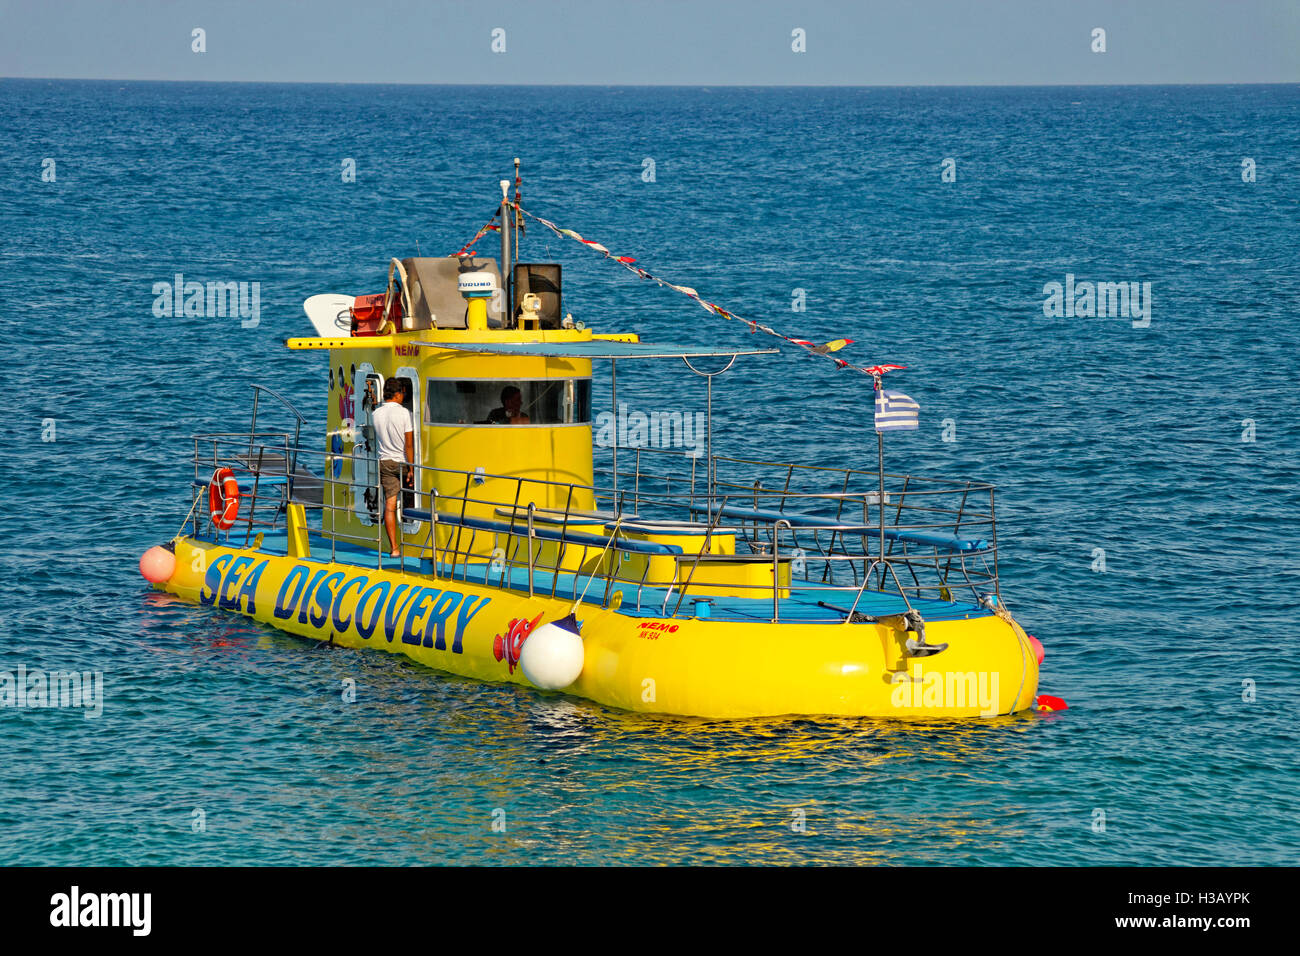 Tourism submarine and glass-bottom boat  at Rhodes,town, Island of Rhodes, Greece. - Stock Image